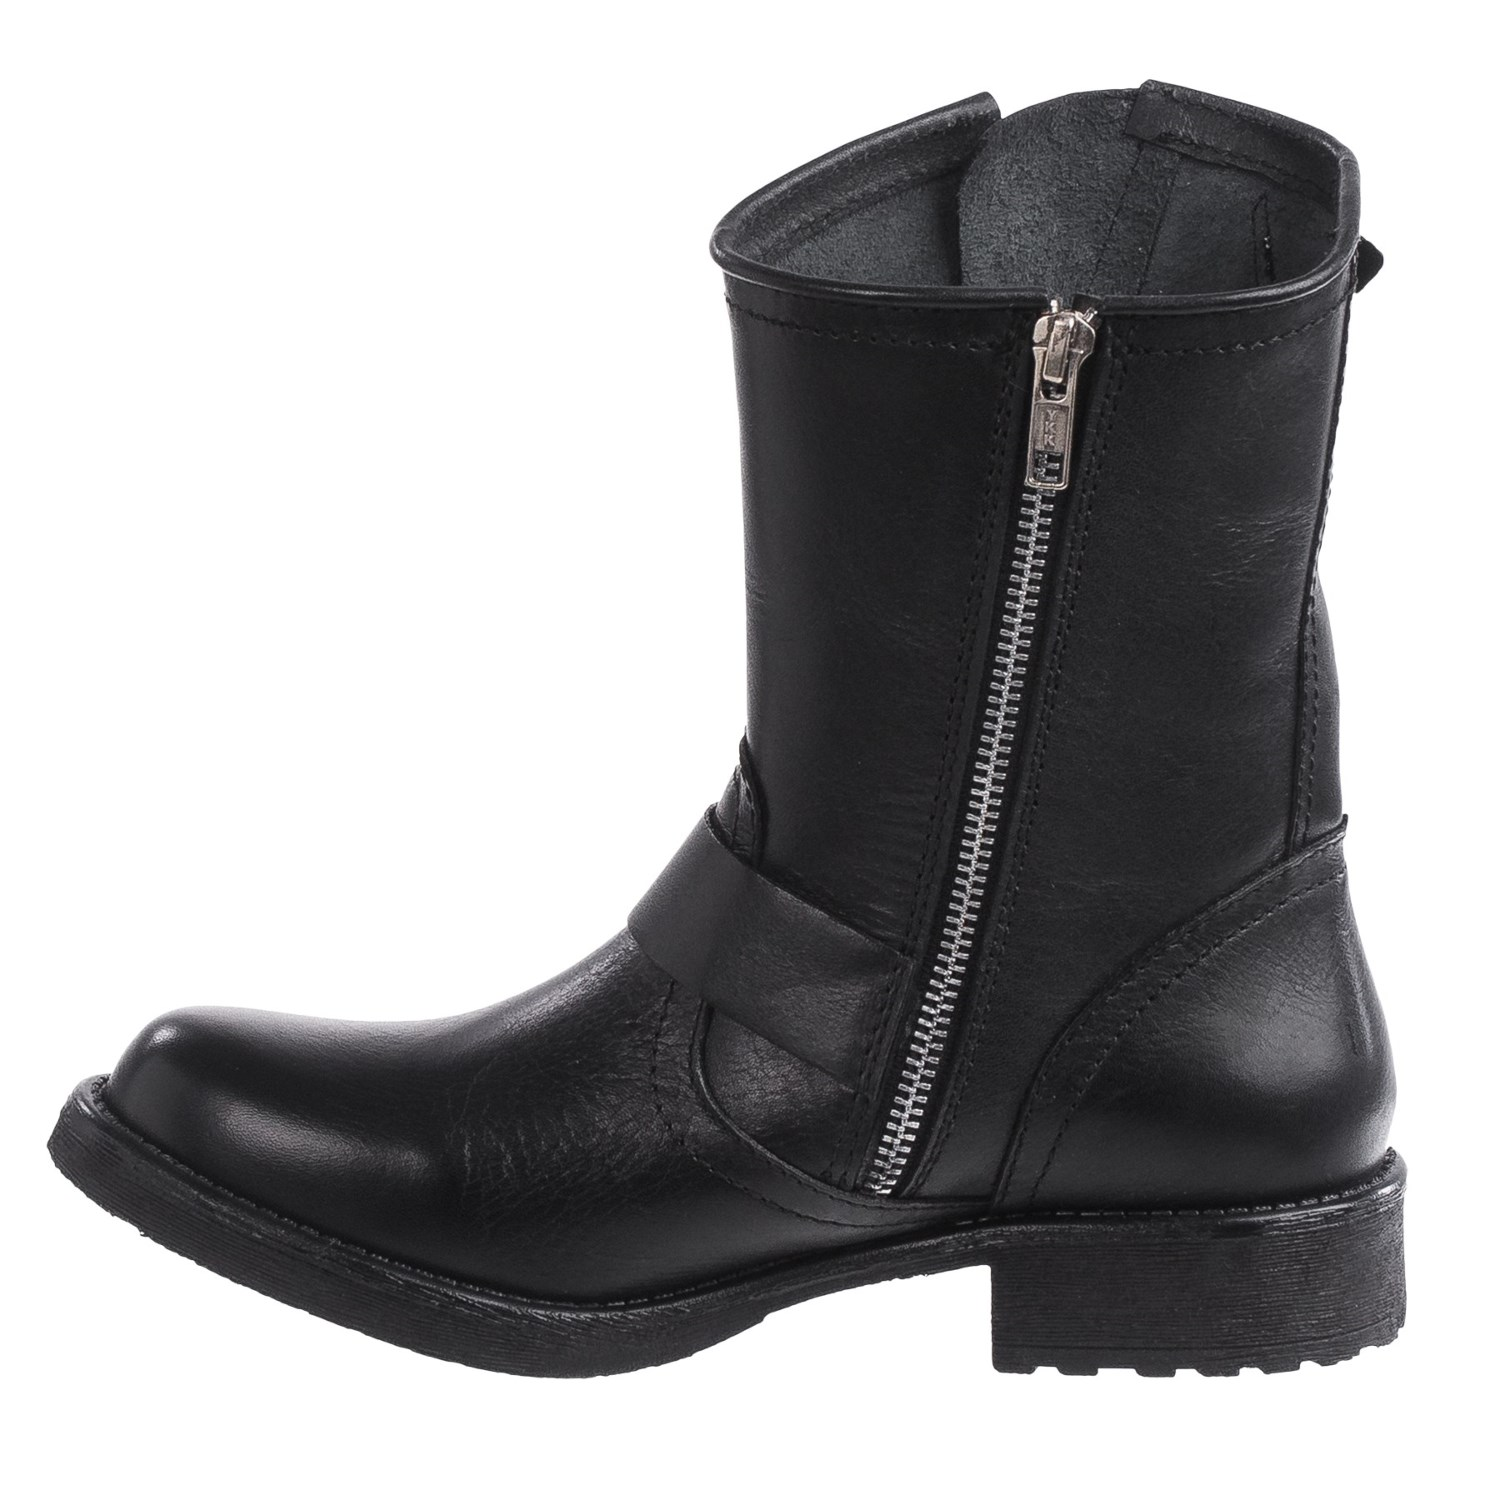 Model HarleyDavidson Women39s Ludwell 55In Black Fashion Boots 4In